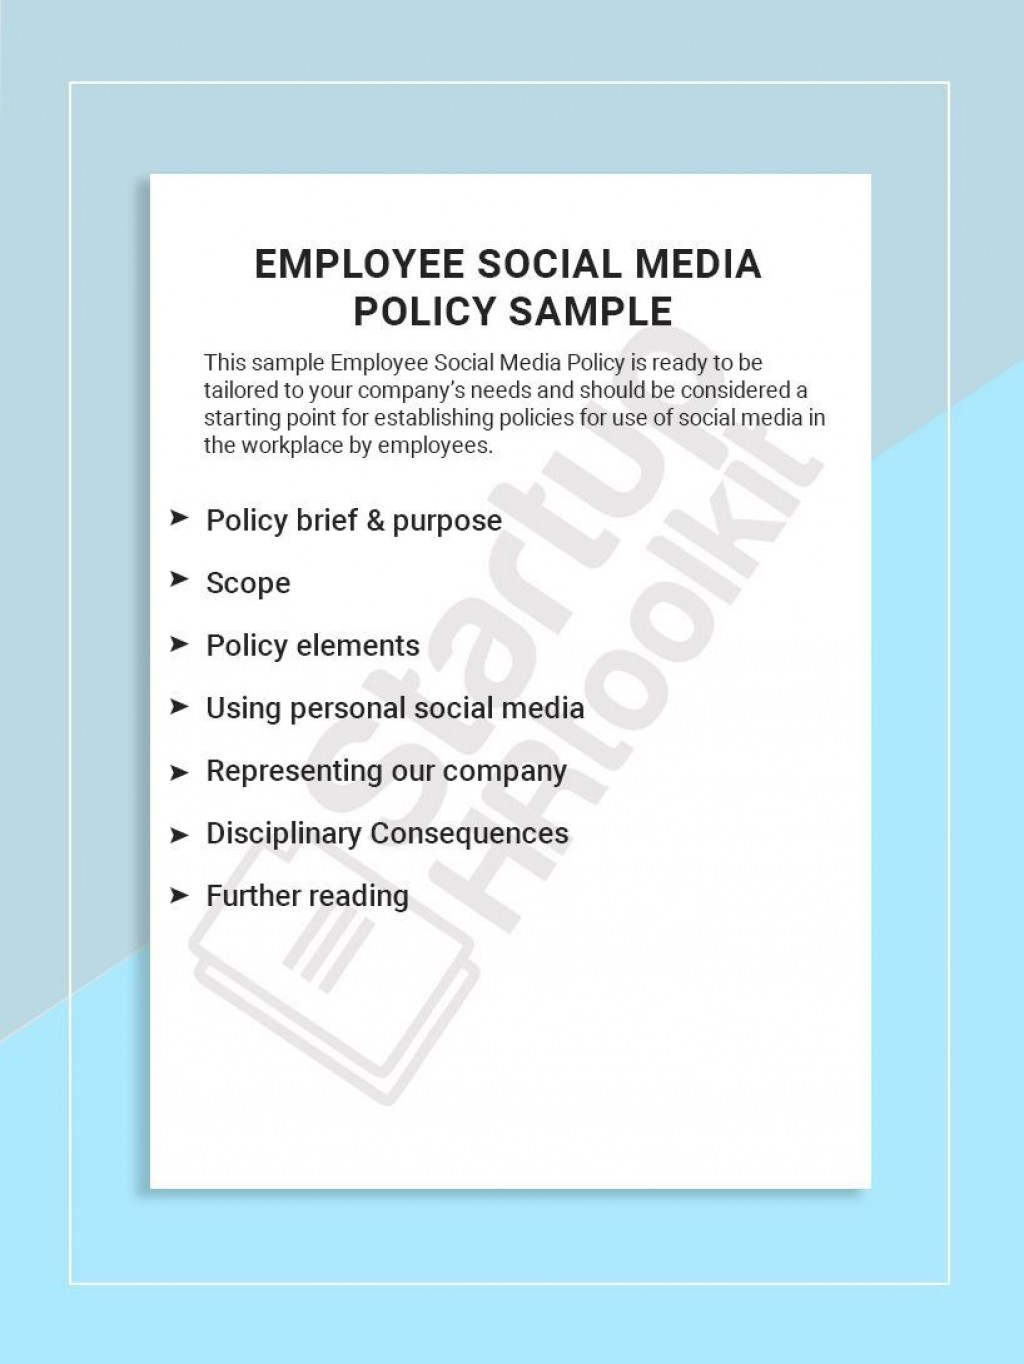 001 Best Social Media Policie Template High Def  Policy For Small Busines Australia Employee Uk CounselorLarge